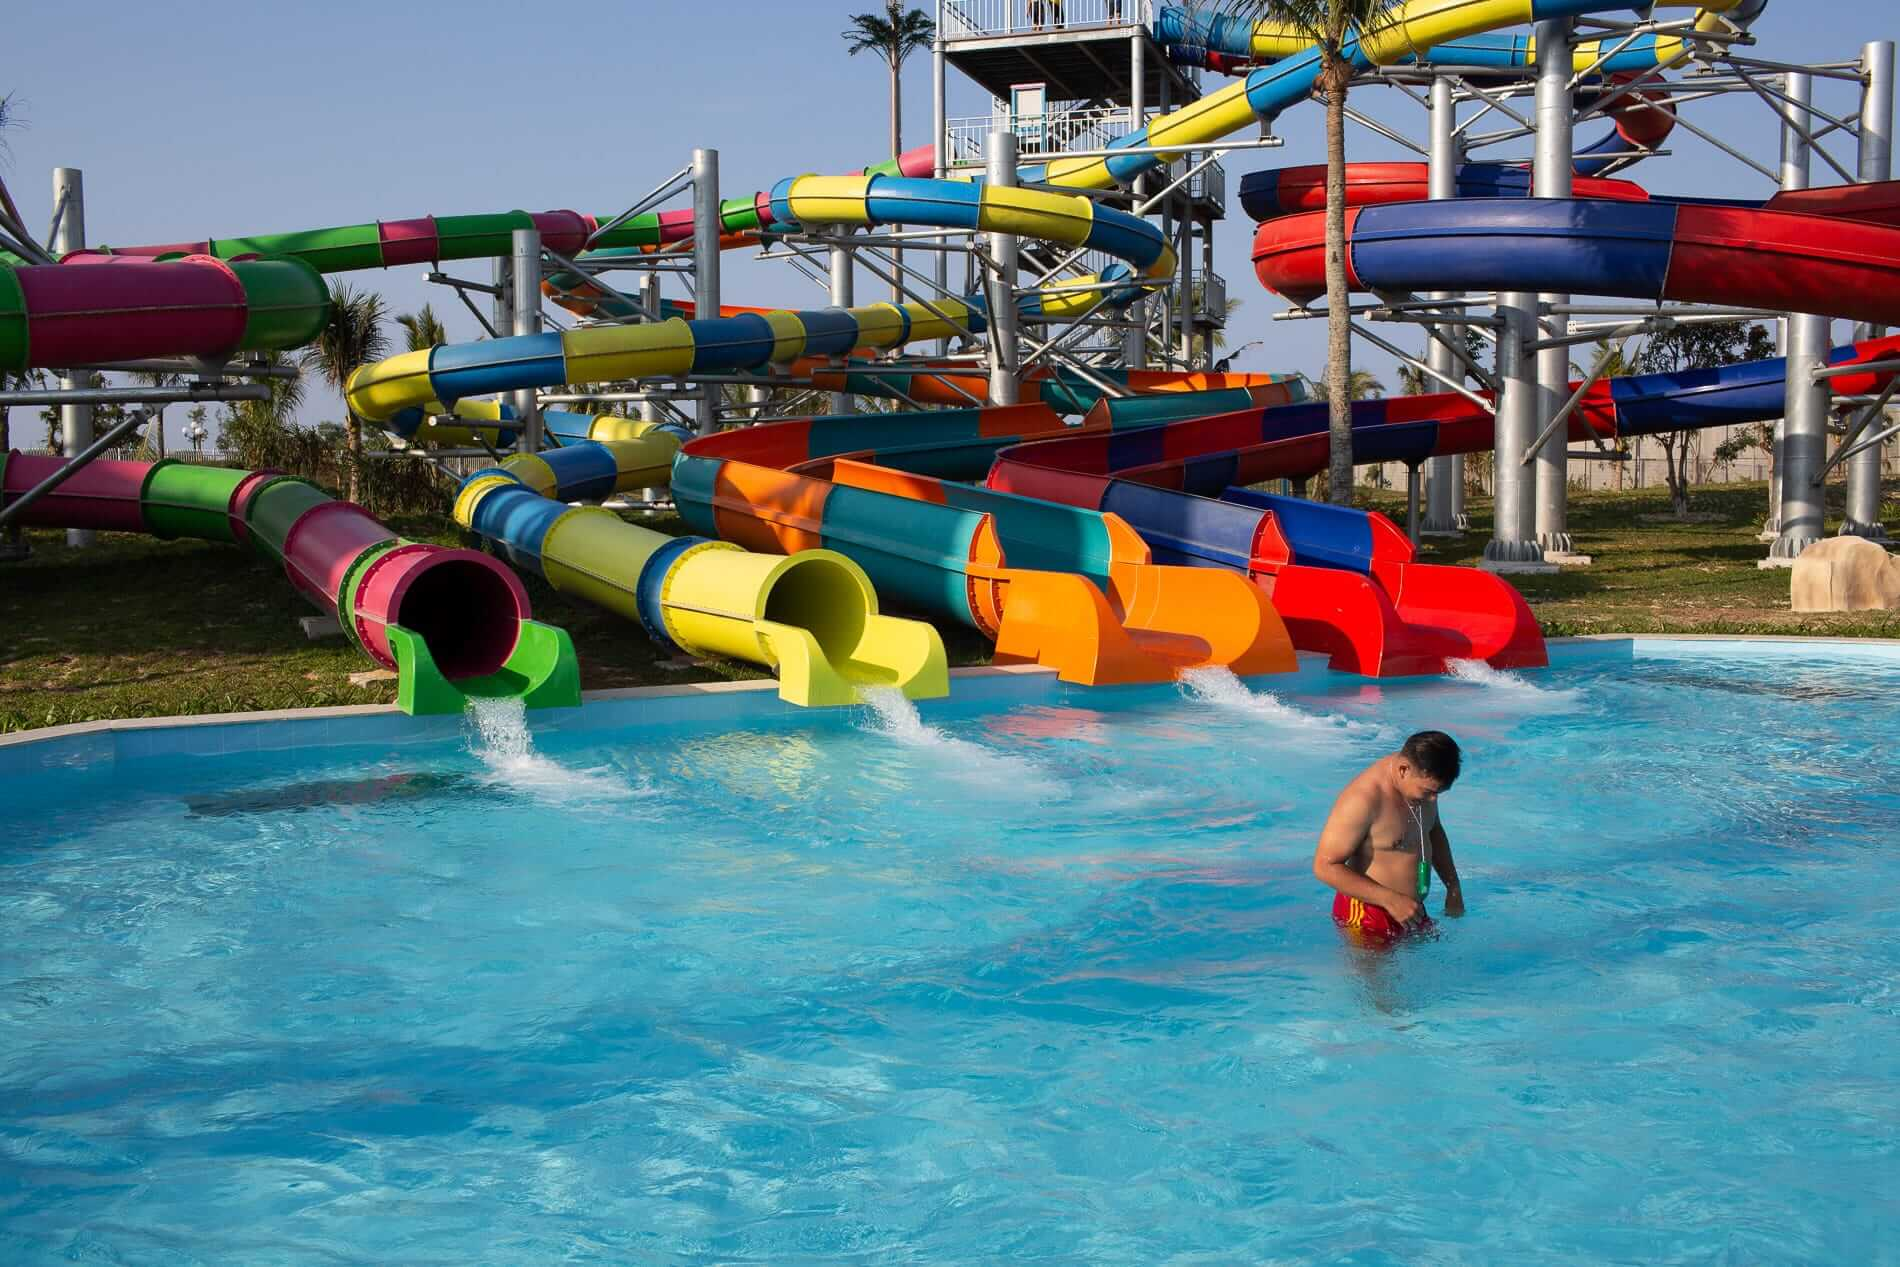 Slides at the VinPearl Land waterpark